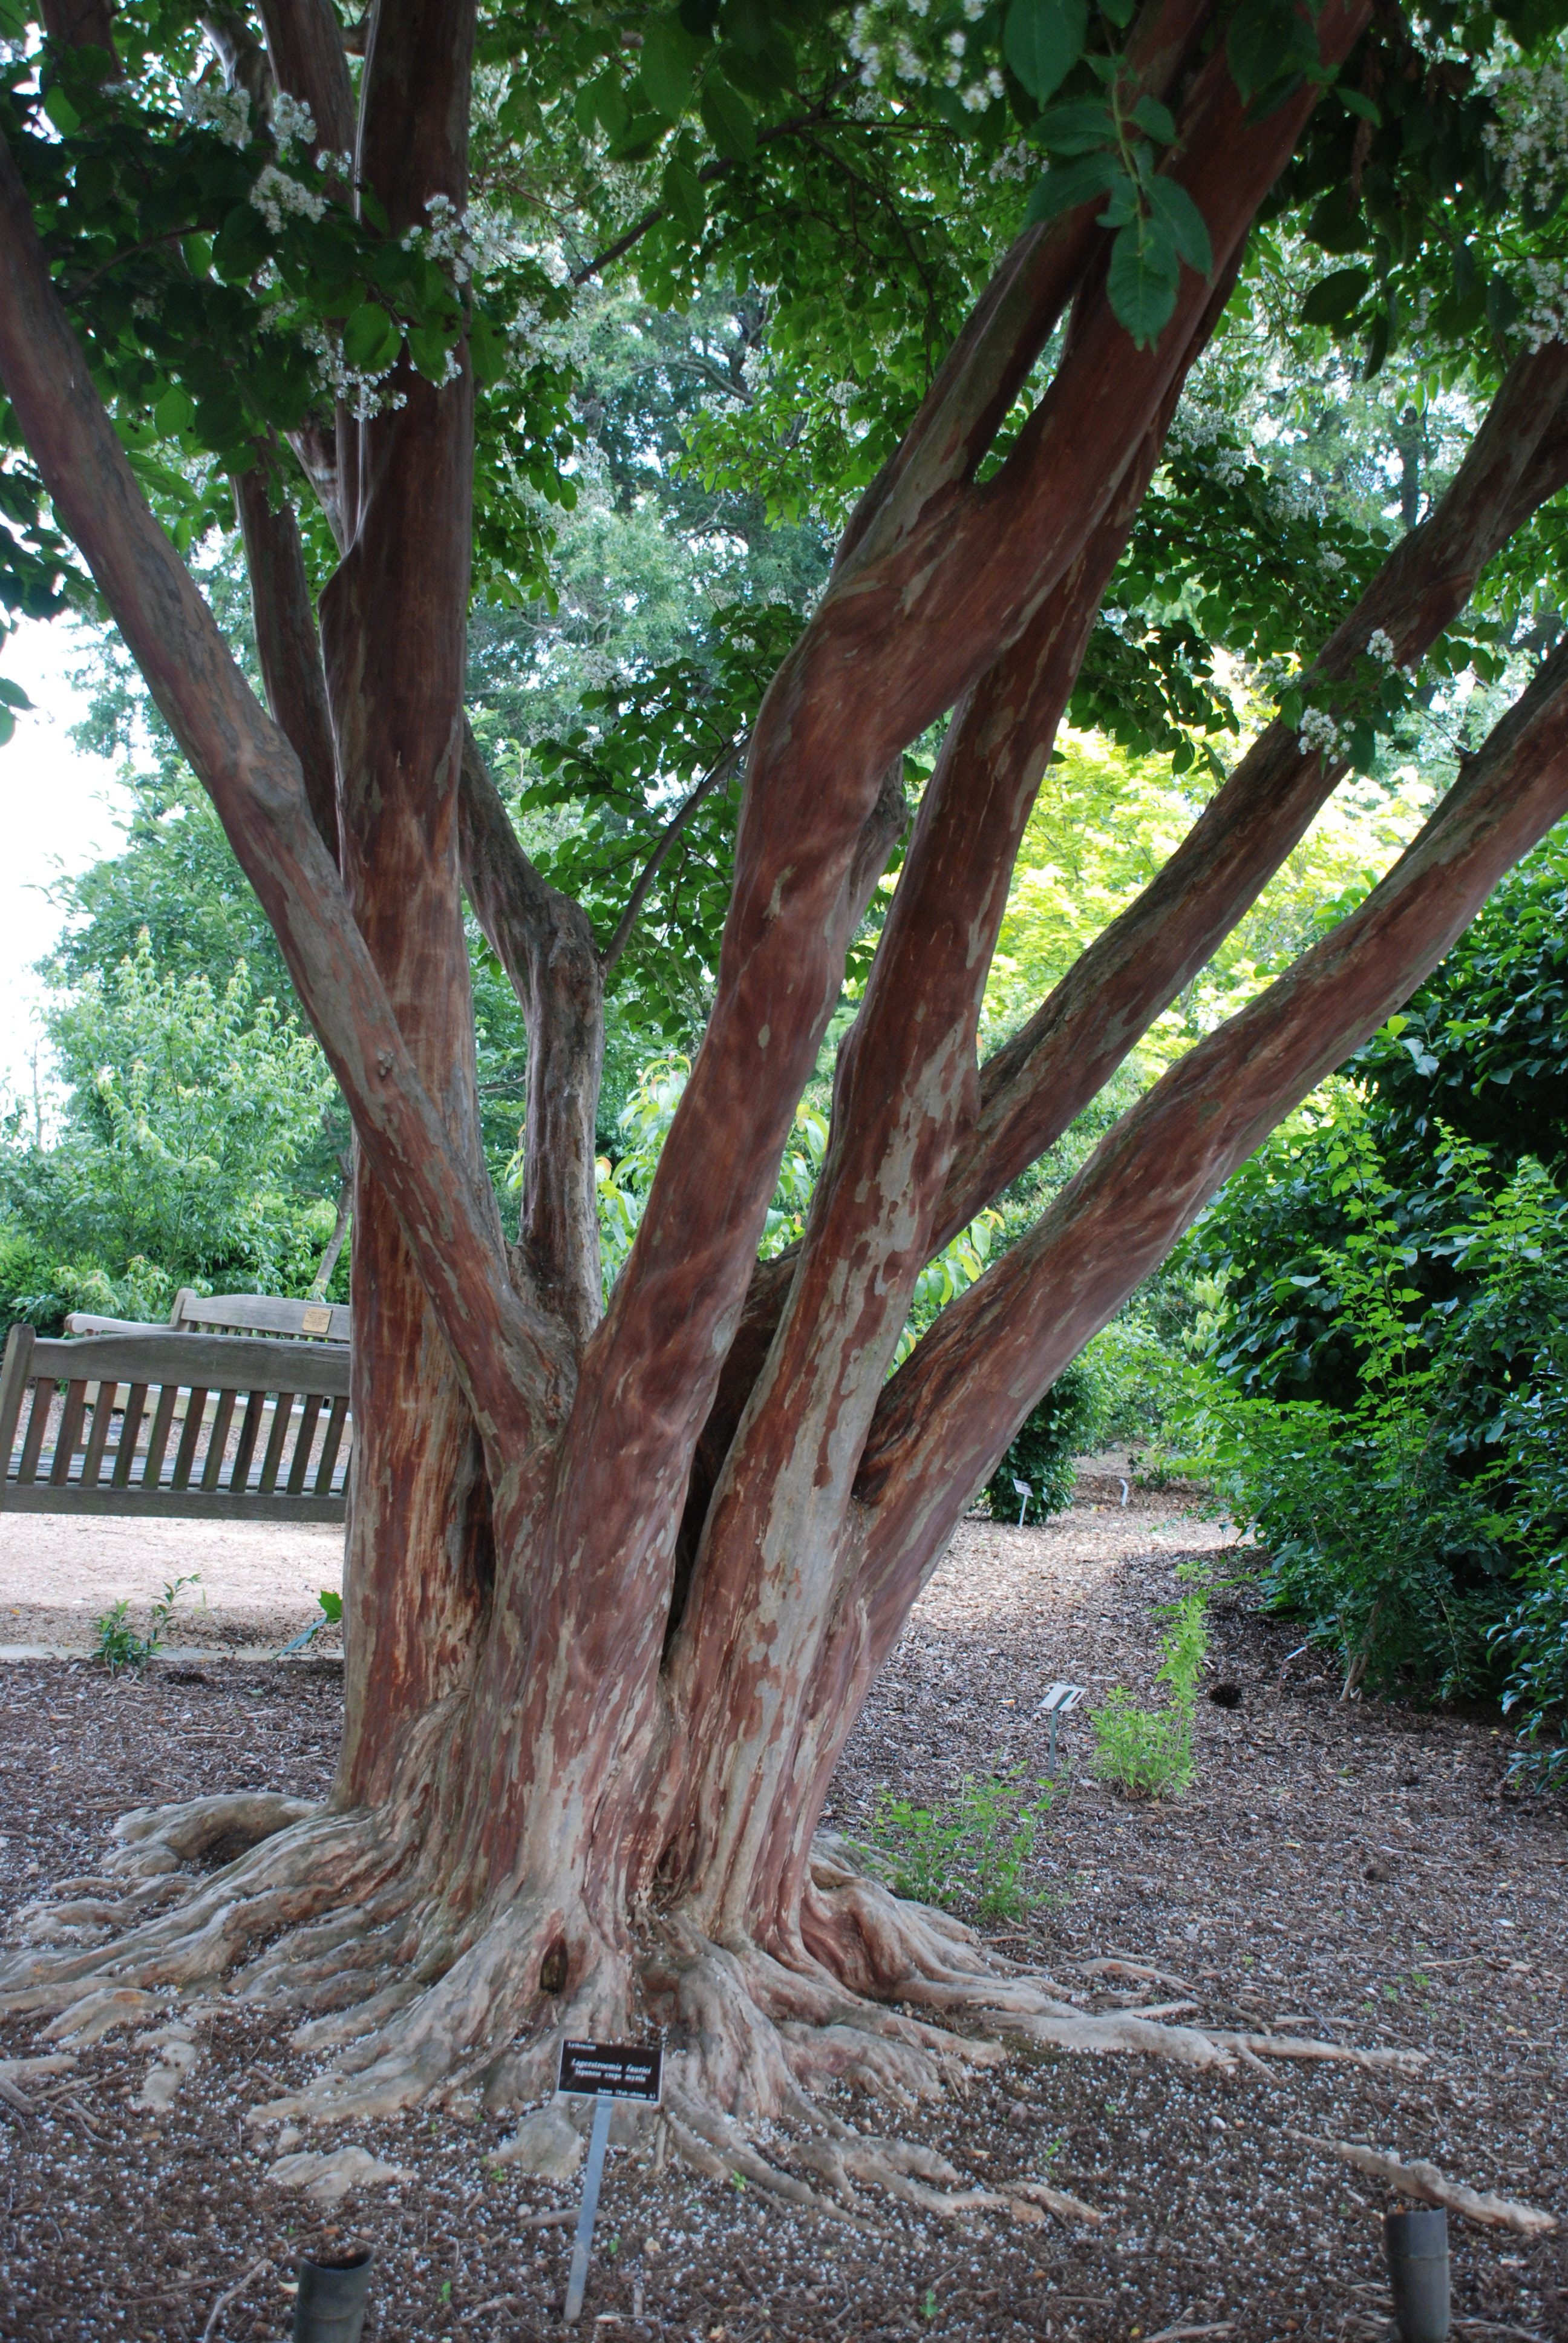 Japanese Crape Myrtle Flaunts Stunning Bark | What Grows There ...